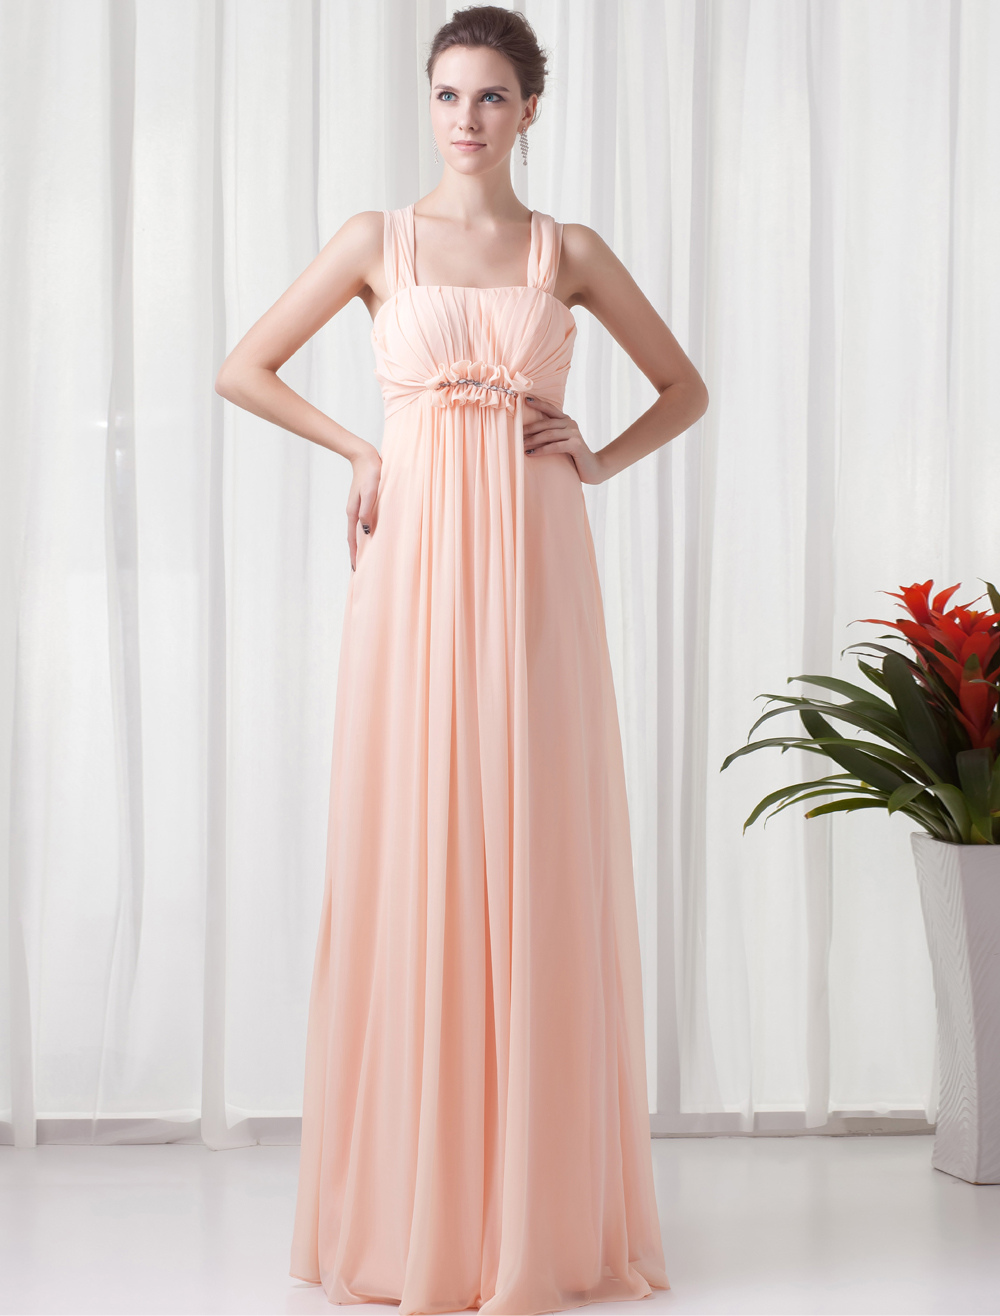 Chiffon Bridesmaid Dress Peach Sleeveless Empire Waist Prom Dress Pleated Ruched Floor Length Wedding Party Dress